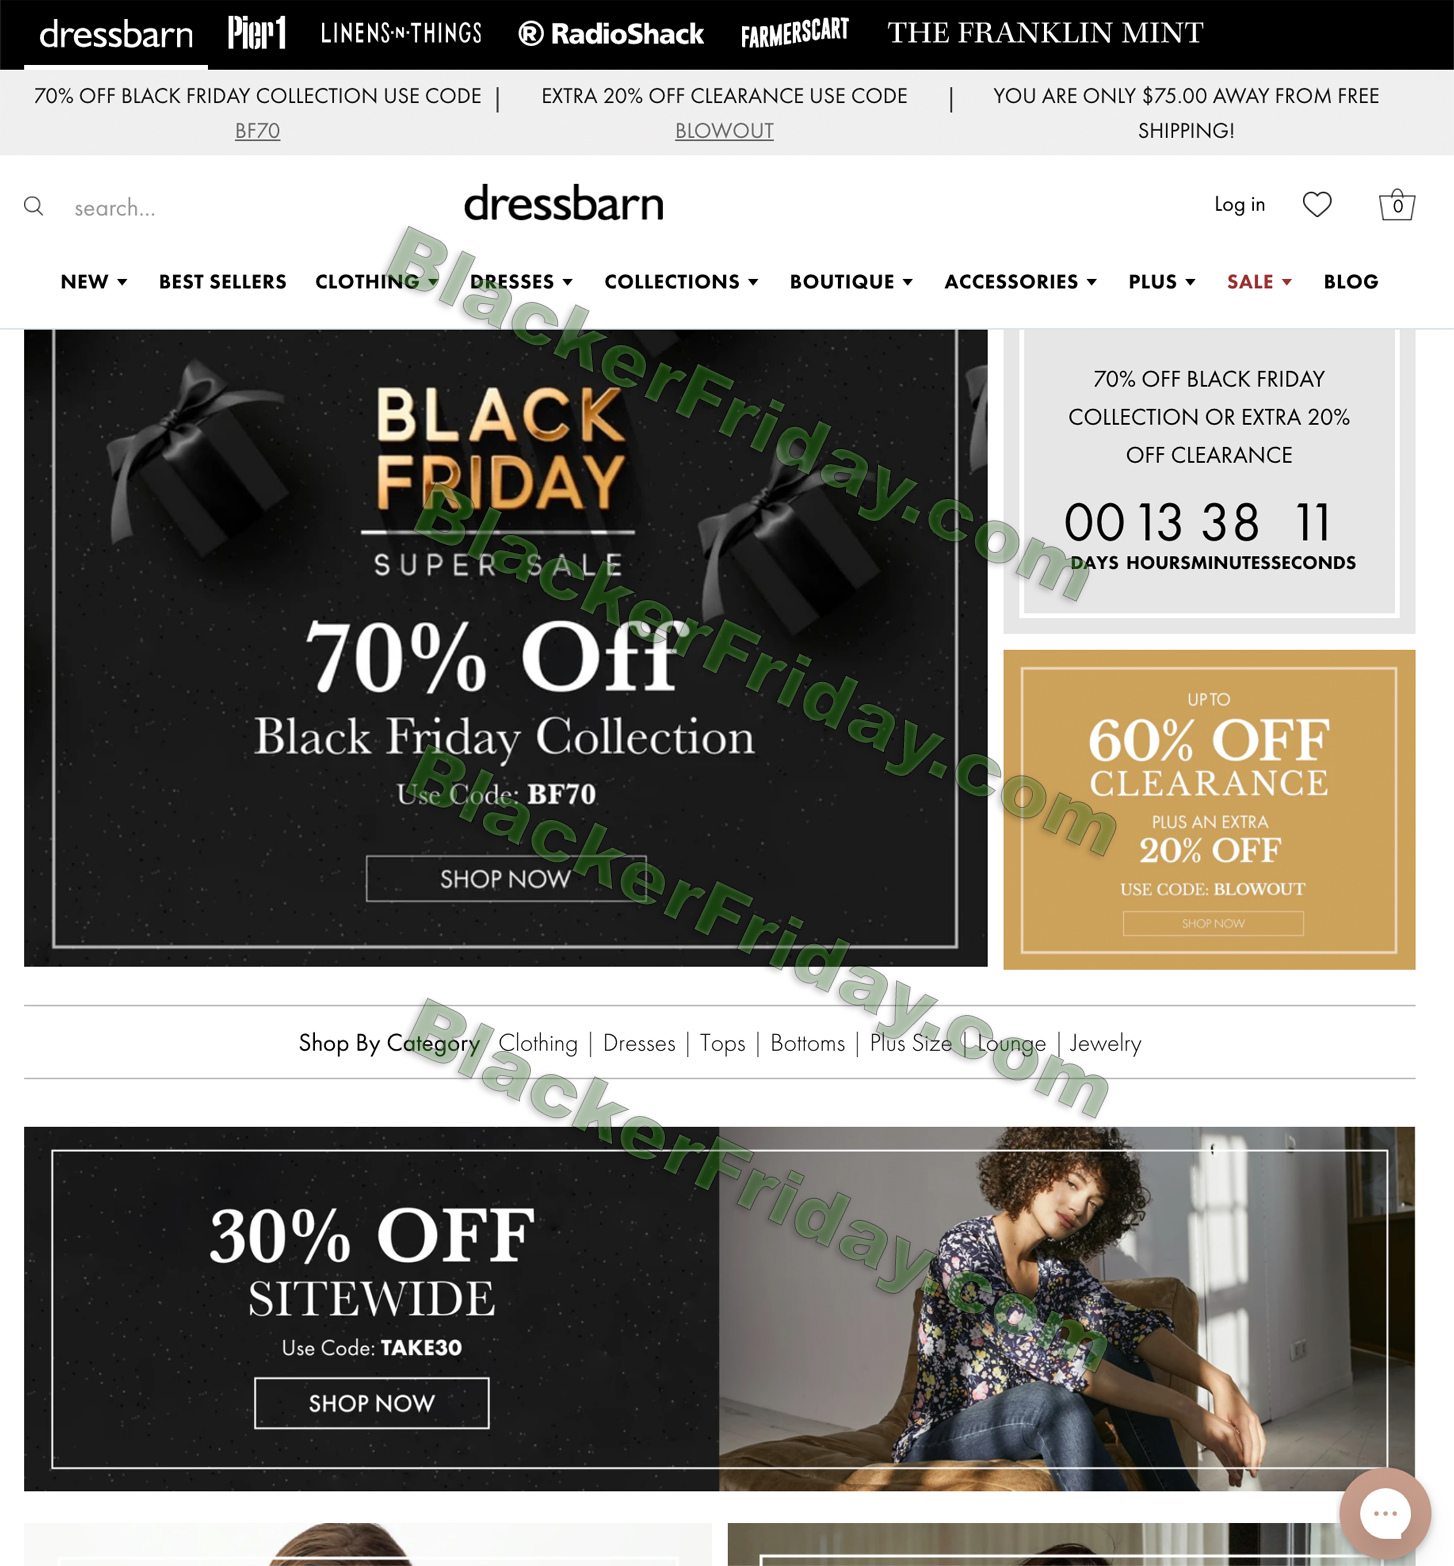 Dressbarn Black Friday 2021 Sale What To Expect Blacker Friday